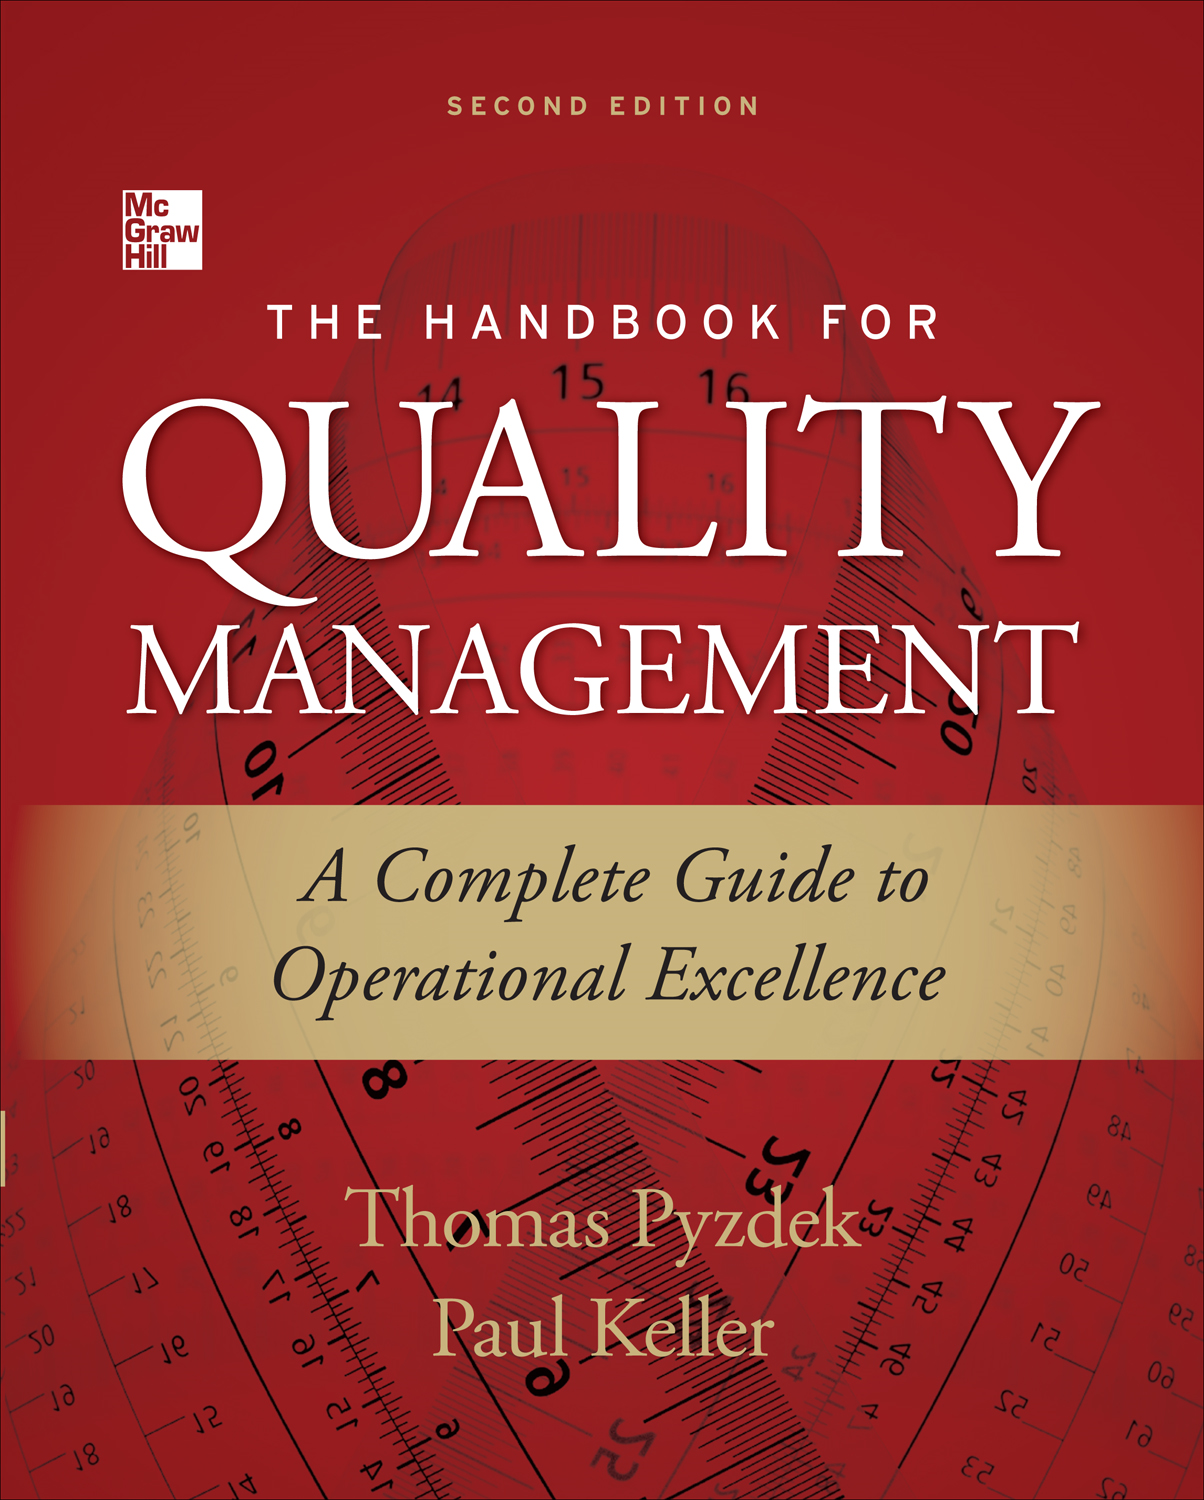 The Handbook for Quality Management, Second Edition : A Complete Guide to Operational Excellence By:  Paul Keller,Thomas Pyzdek